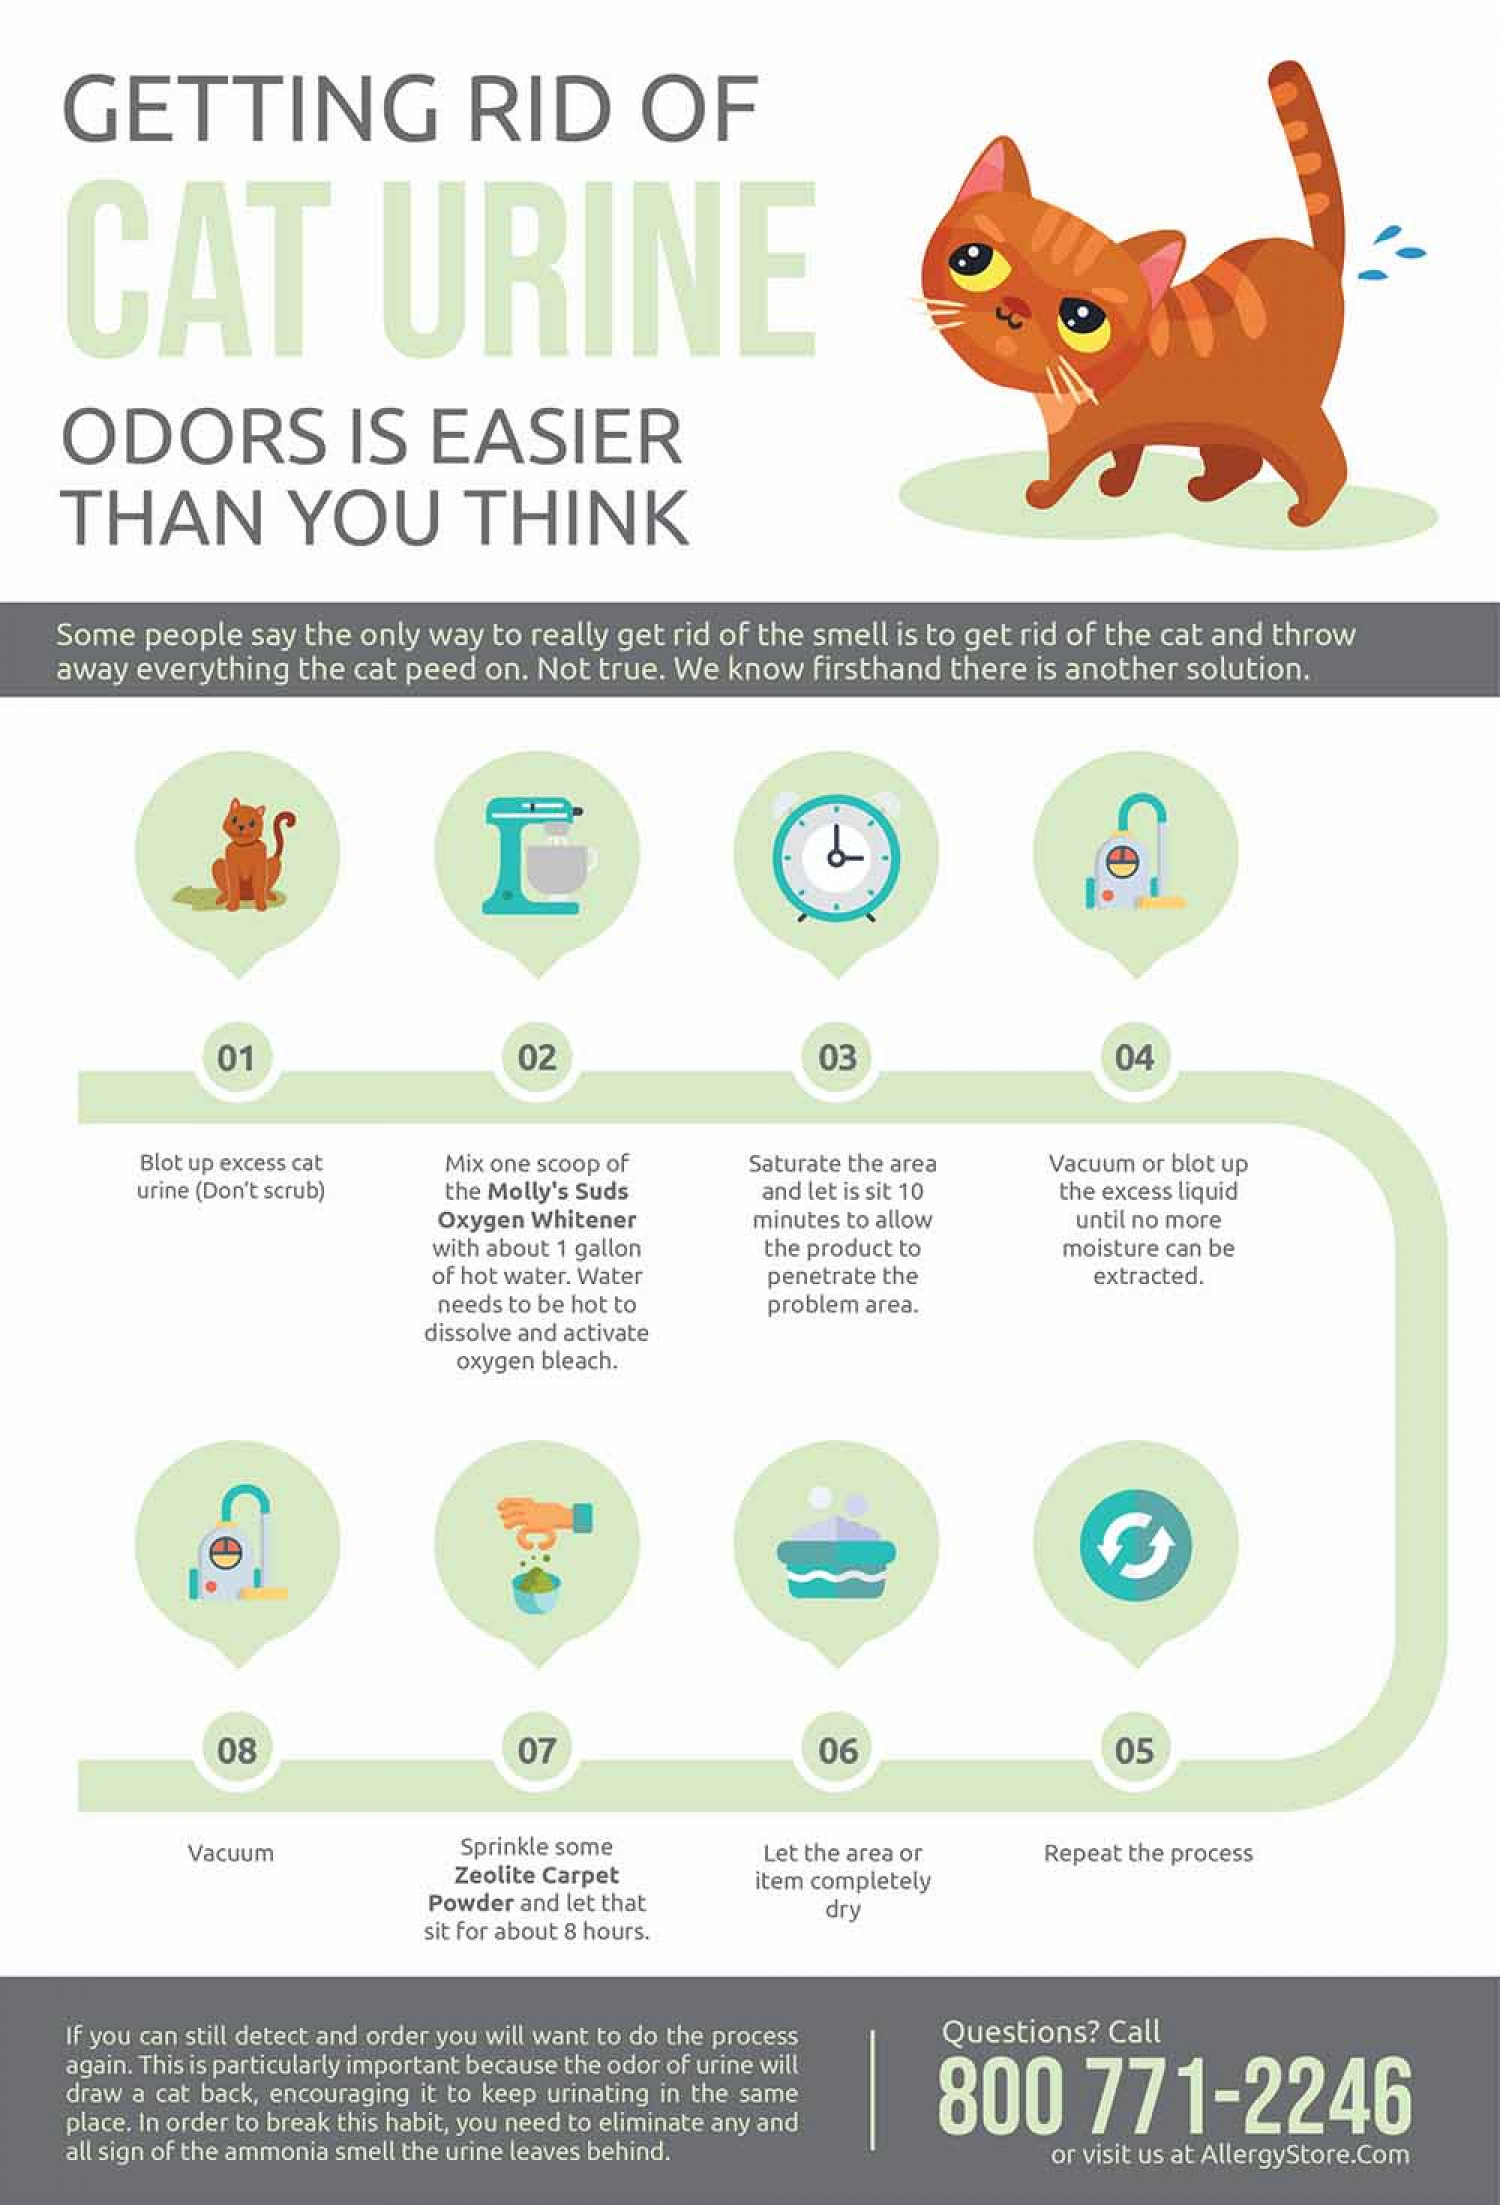 How To Get Rid Of Cat Urine Smell >> Getting Rid Of Cat Urine Odors Is Easier Than You Think